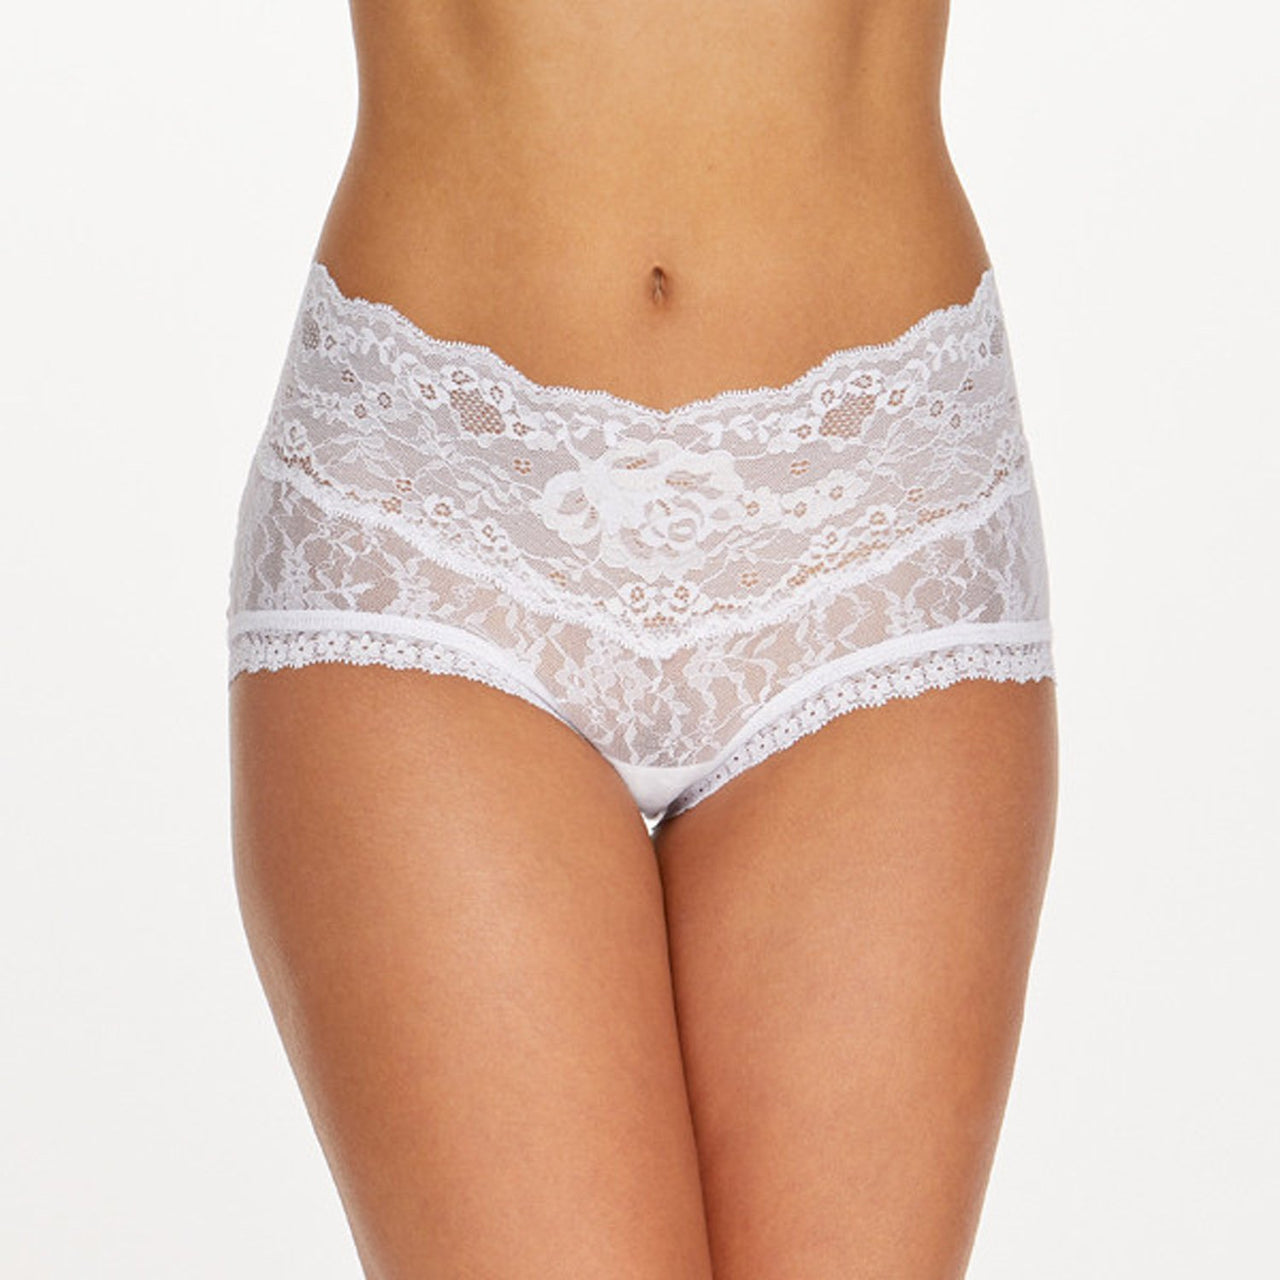 Panty-Engineered Lace